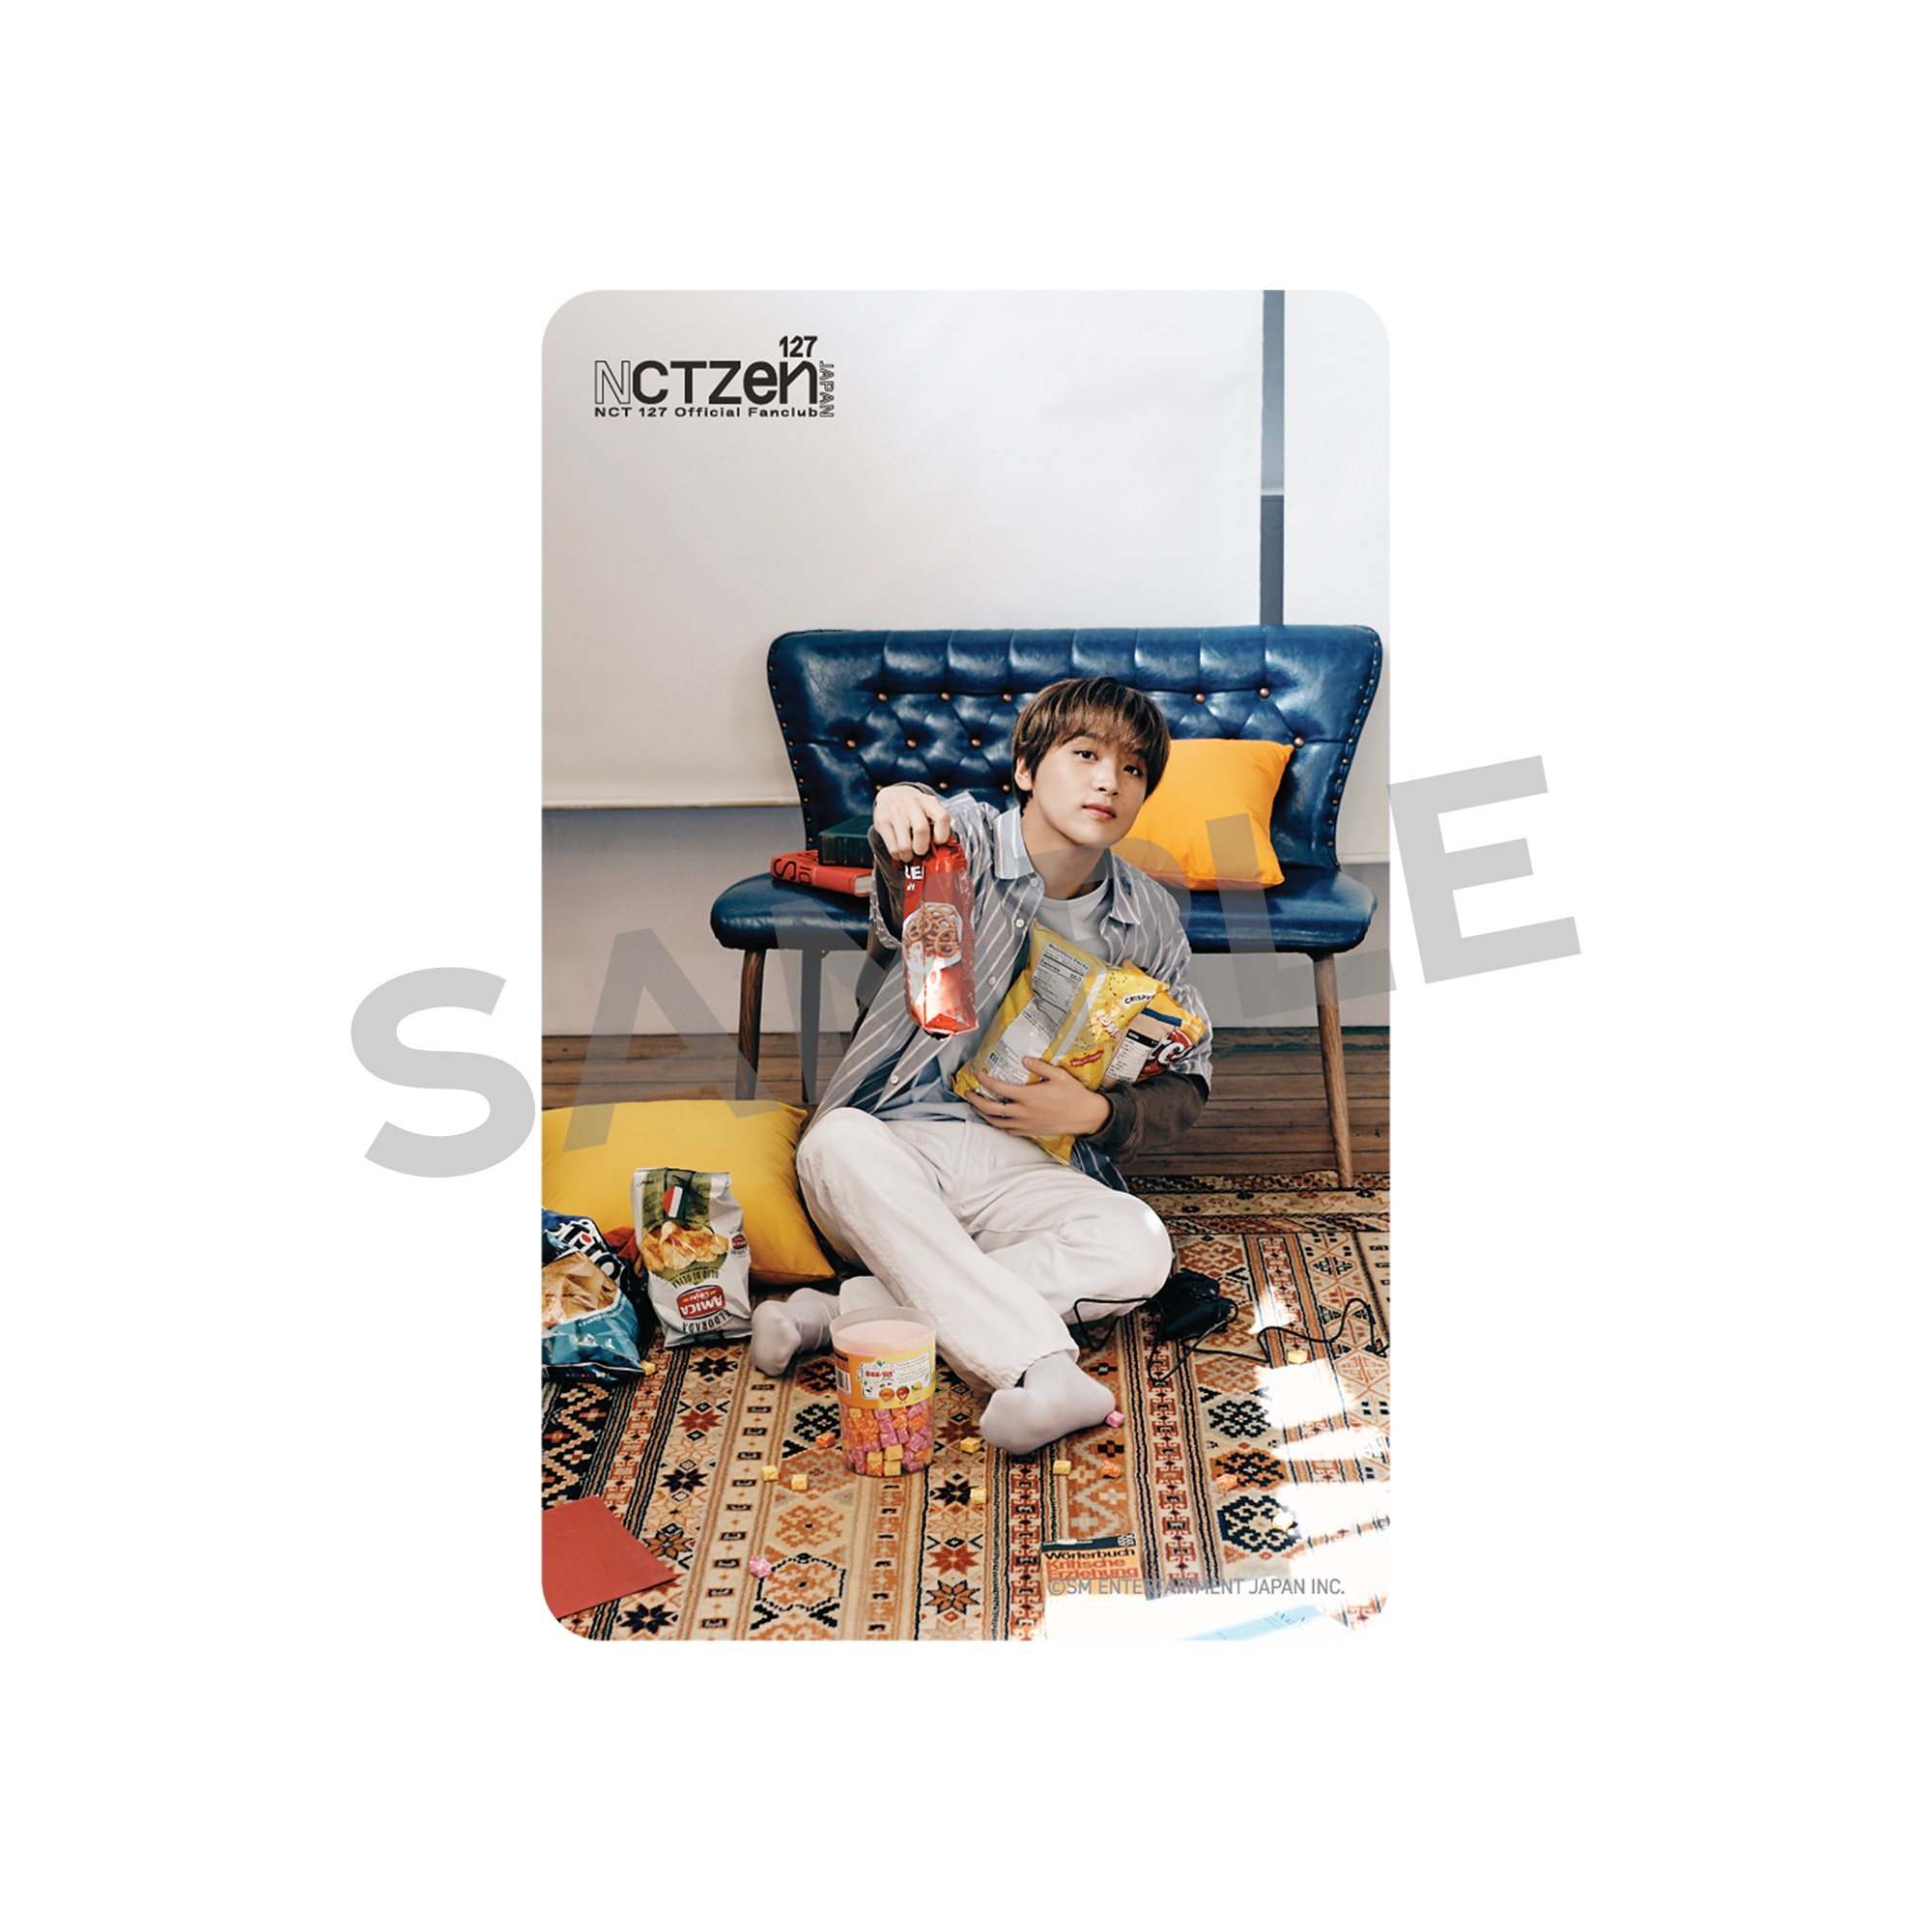 【NCT 127】『NCT 127 OFFICIAL BOOK Vol.4』グッズを、メンバー別に詳しく紹介!_10_4